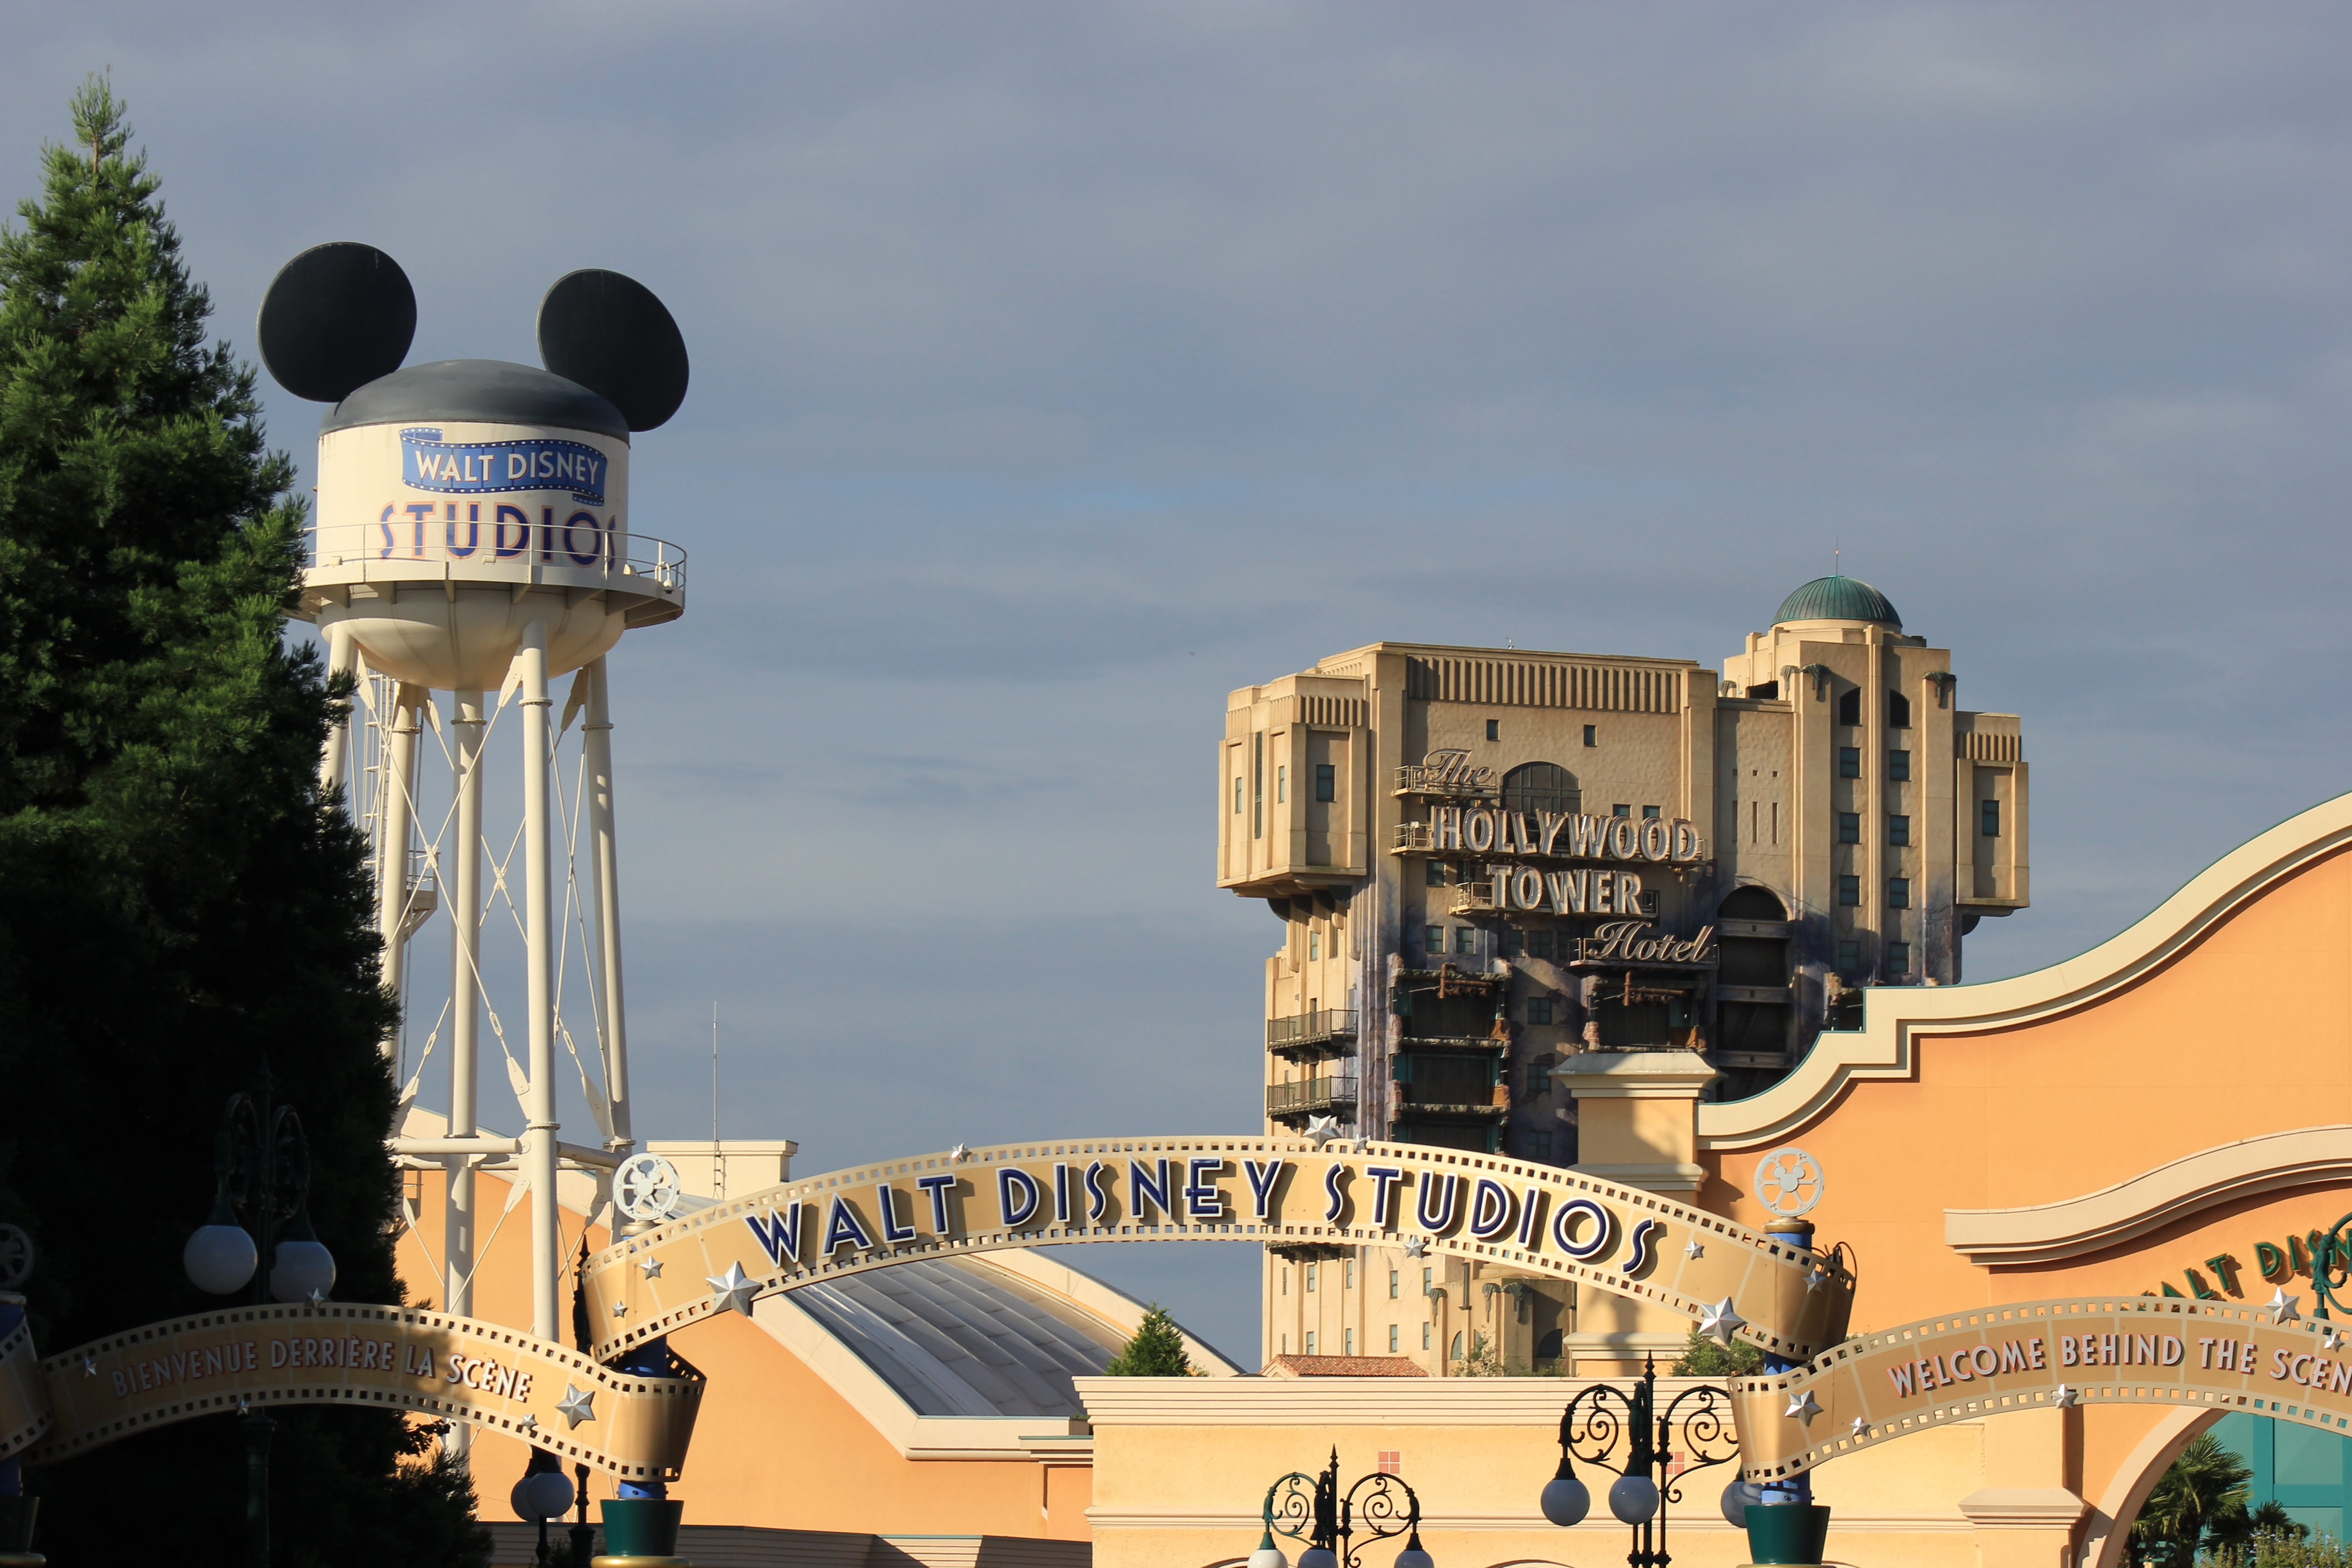 Walt Disney Studios park in the distance. Earful Tower, Tower of Terror and Disney Studio 1